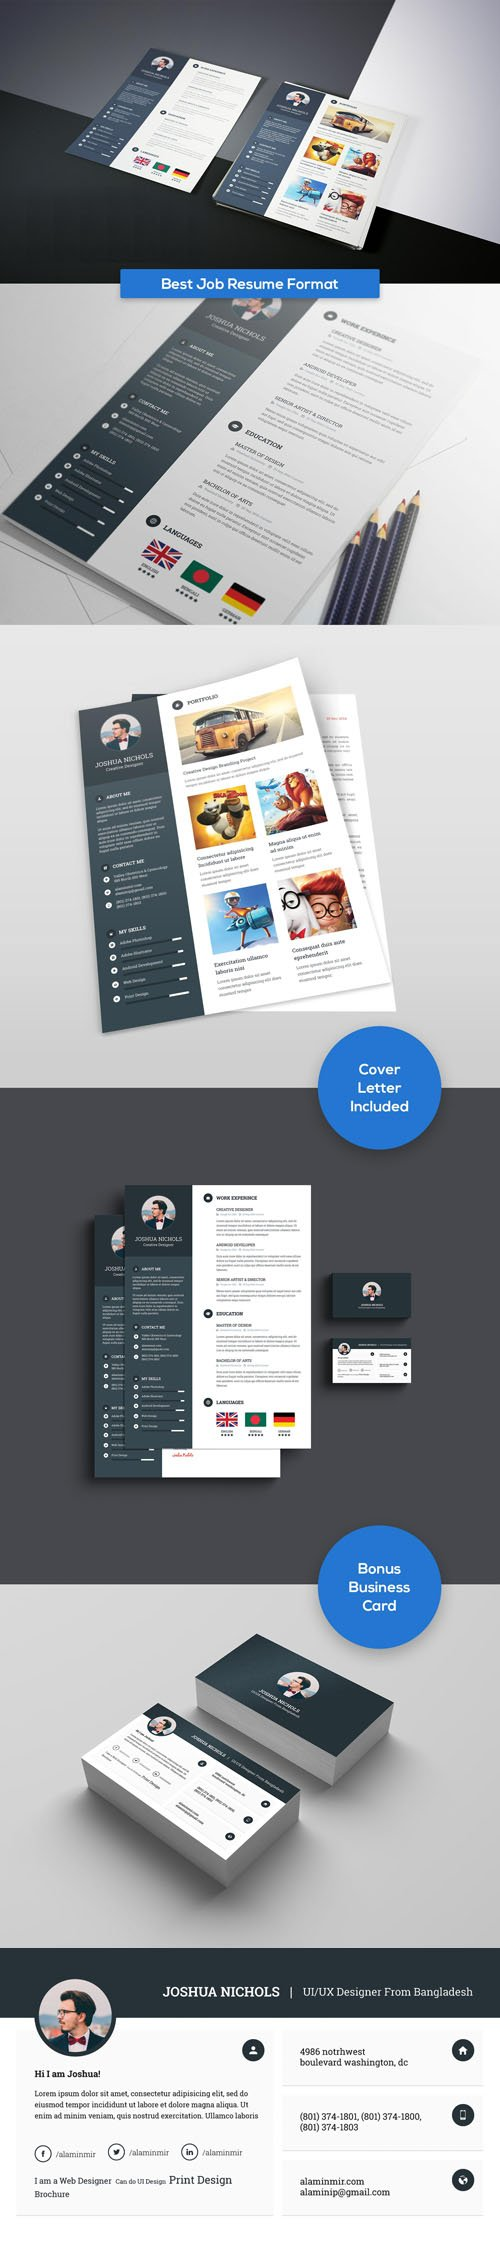 best job resume format psd templates with business card  u00bb nitrogfx